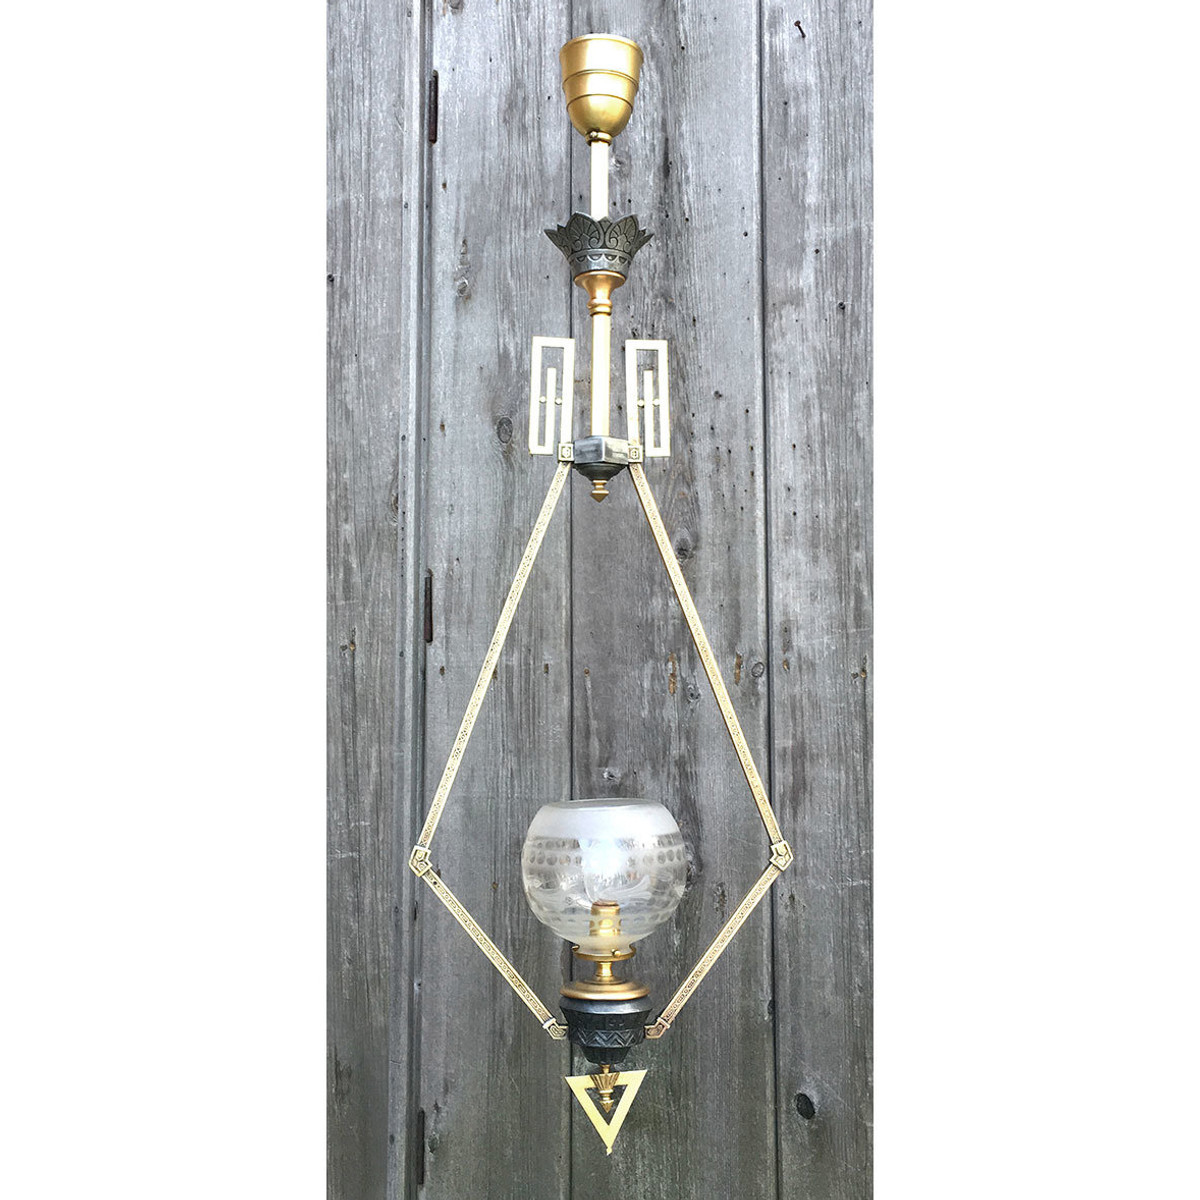 L17048 - Rare Antique Neo-Grec Victorian Gas Hall Fixture